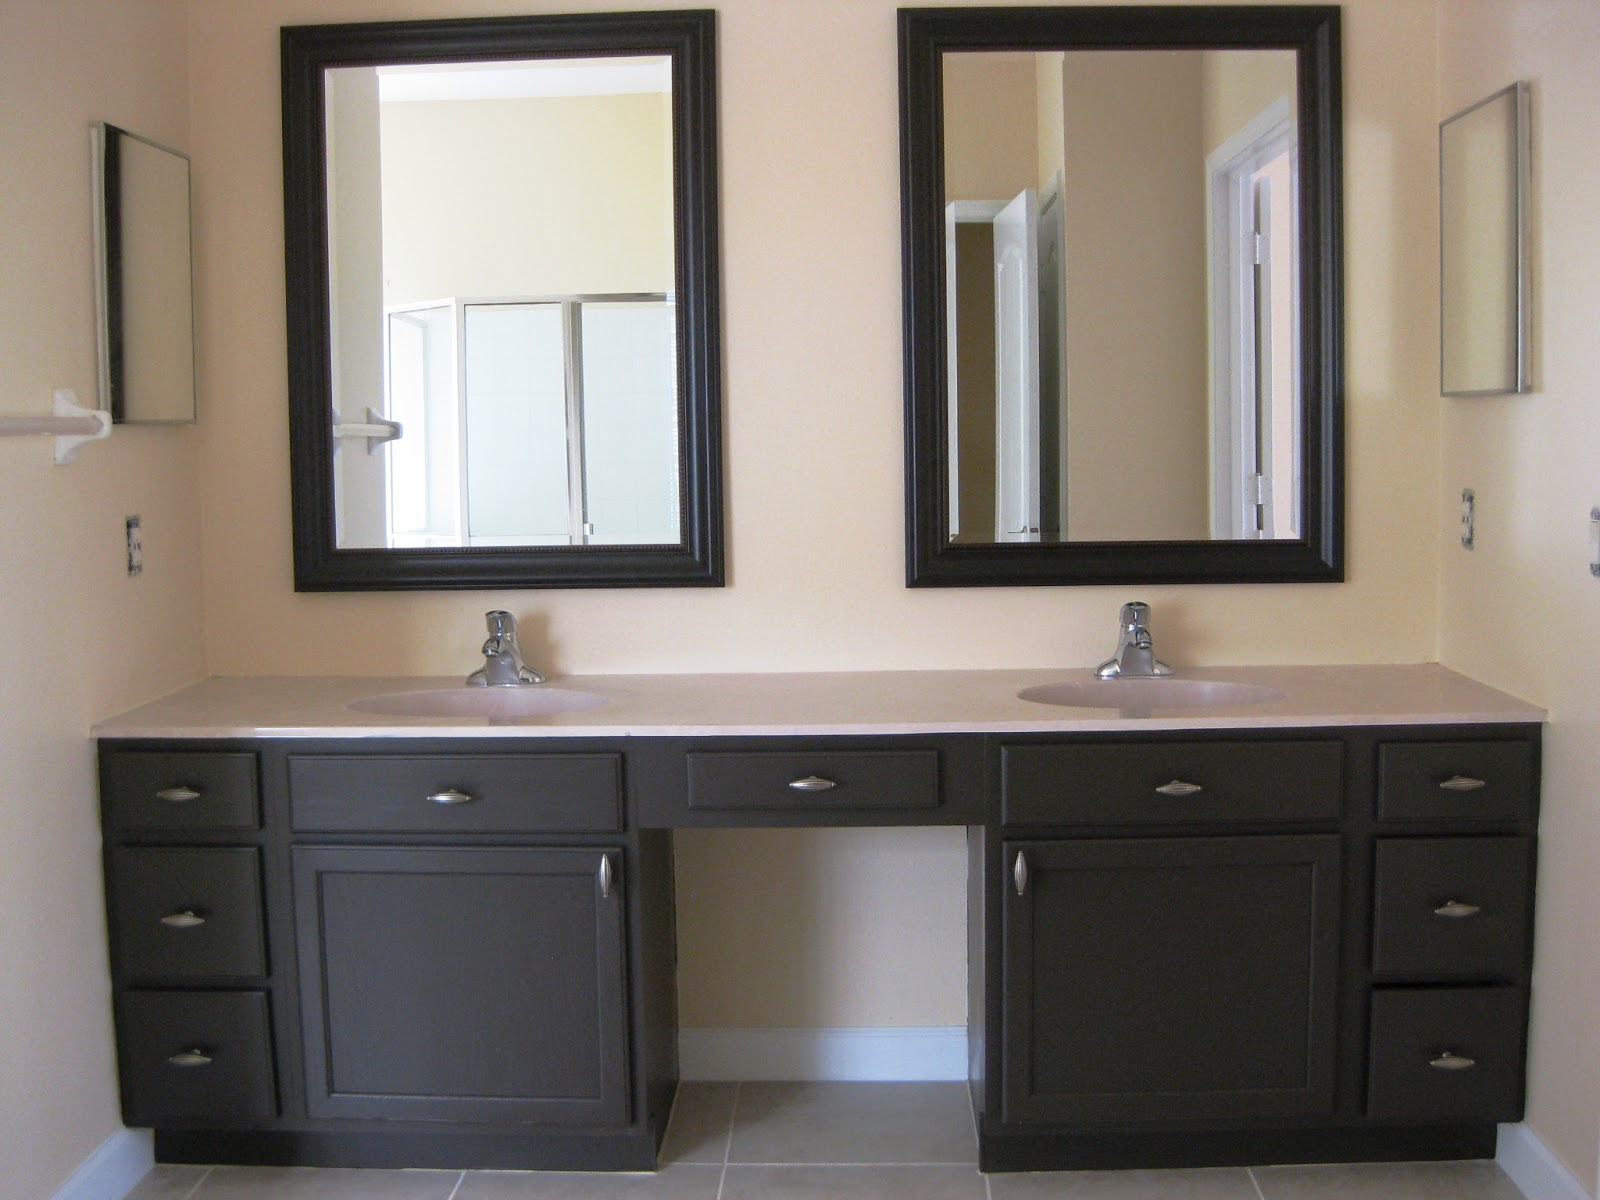 array of color inc painted bath room cabinets